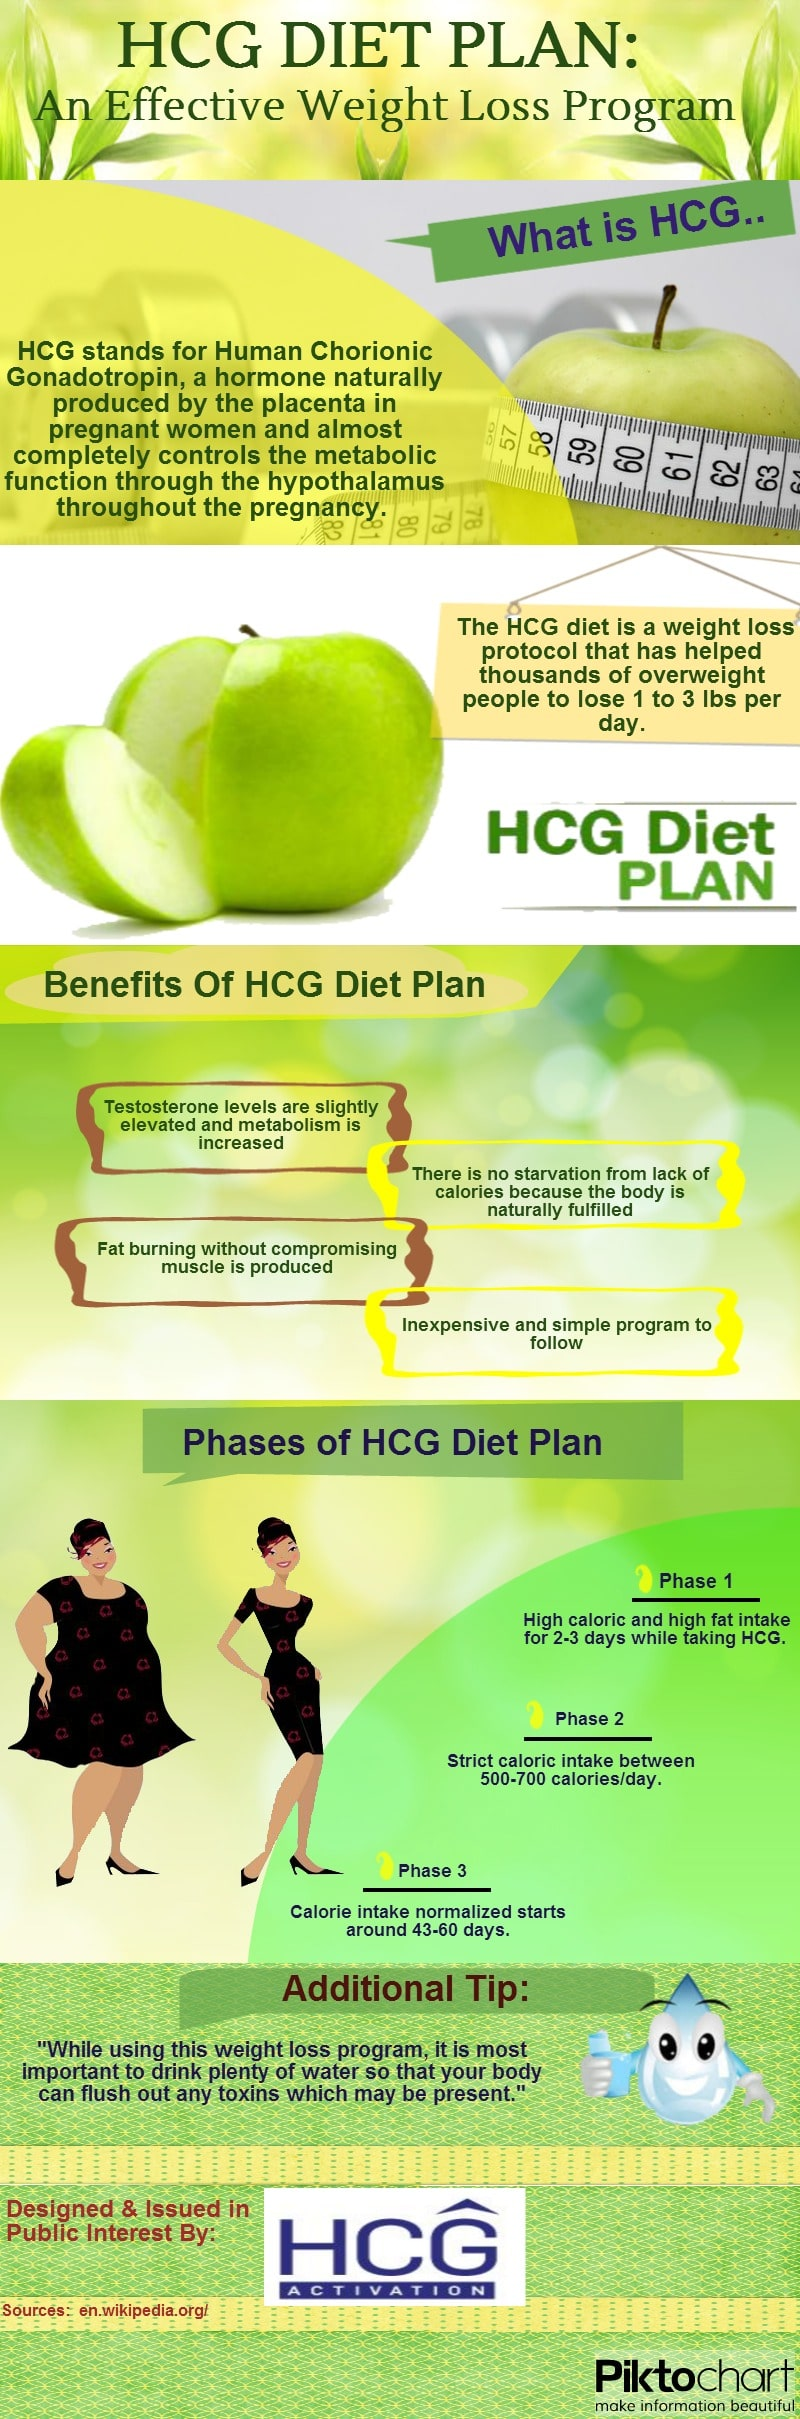 HCG Diet Plan for Weight loss